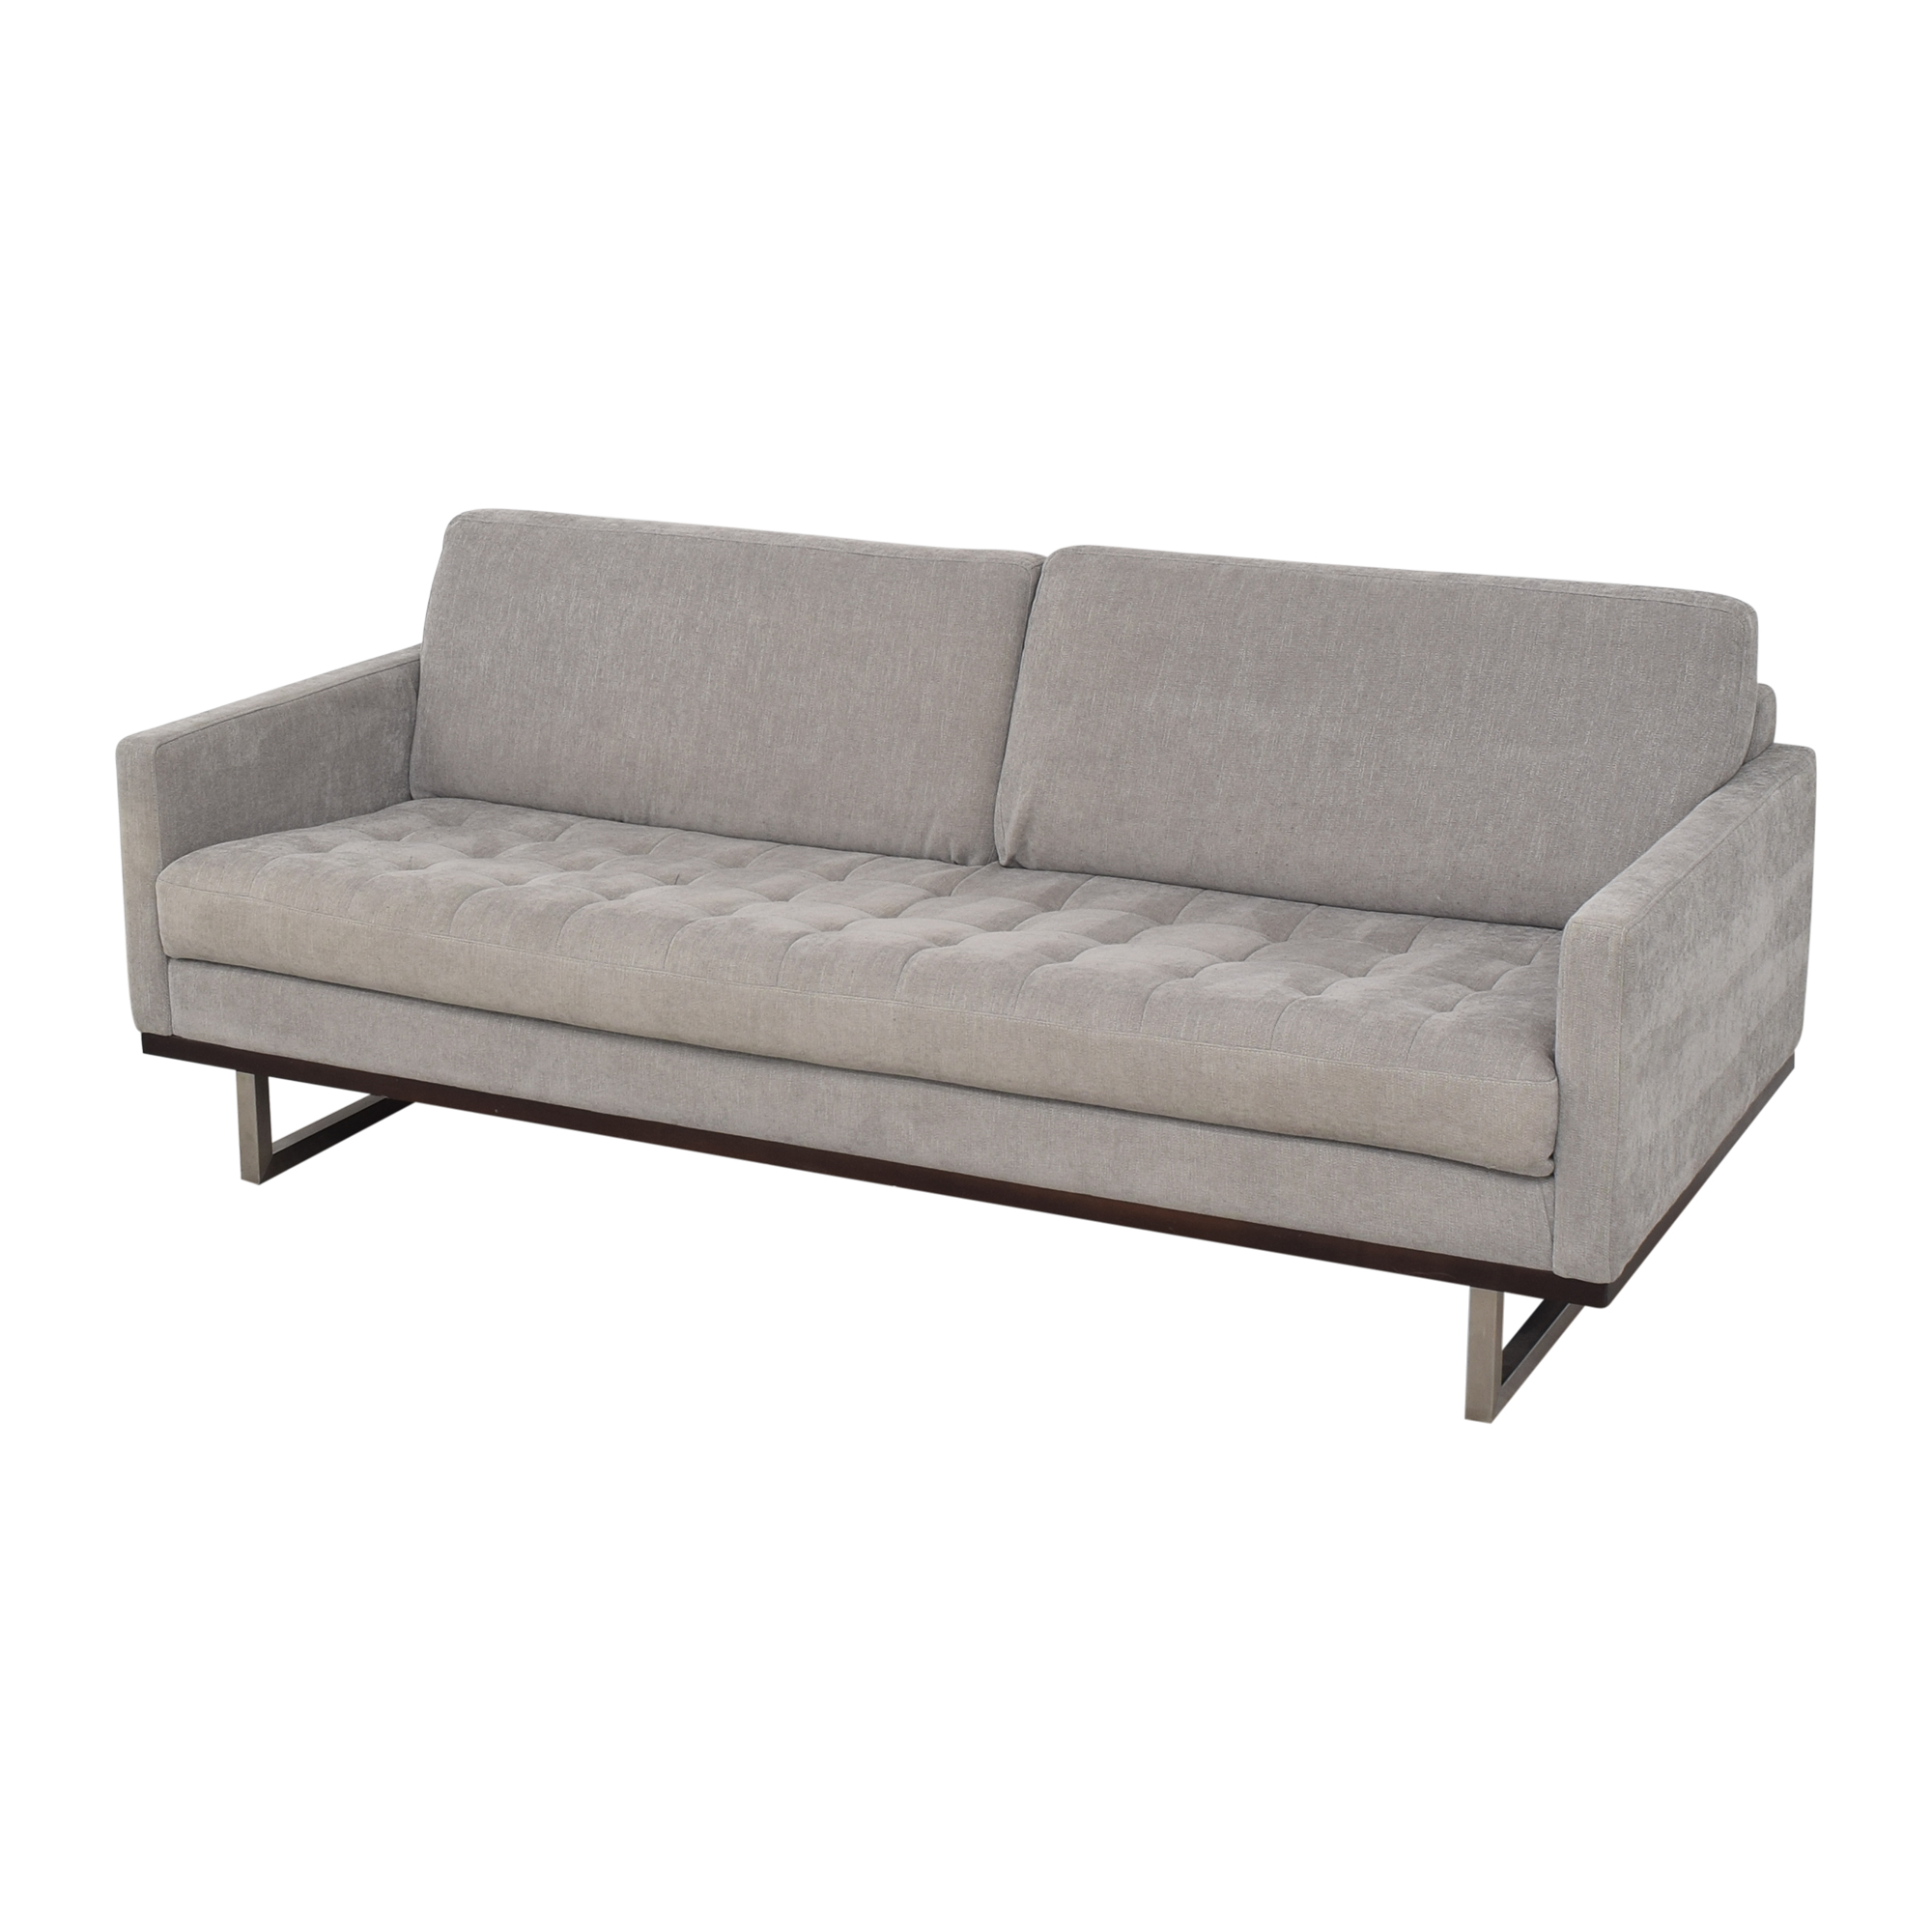 American Leather American Leather Tristan Sofa ct